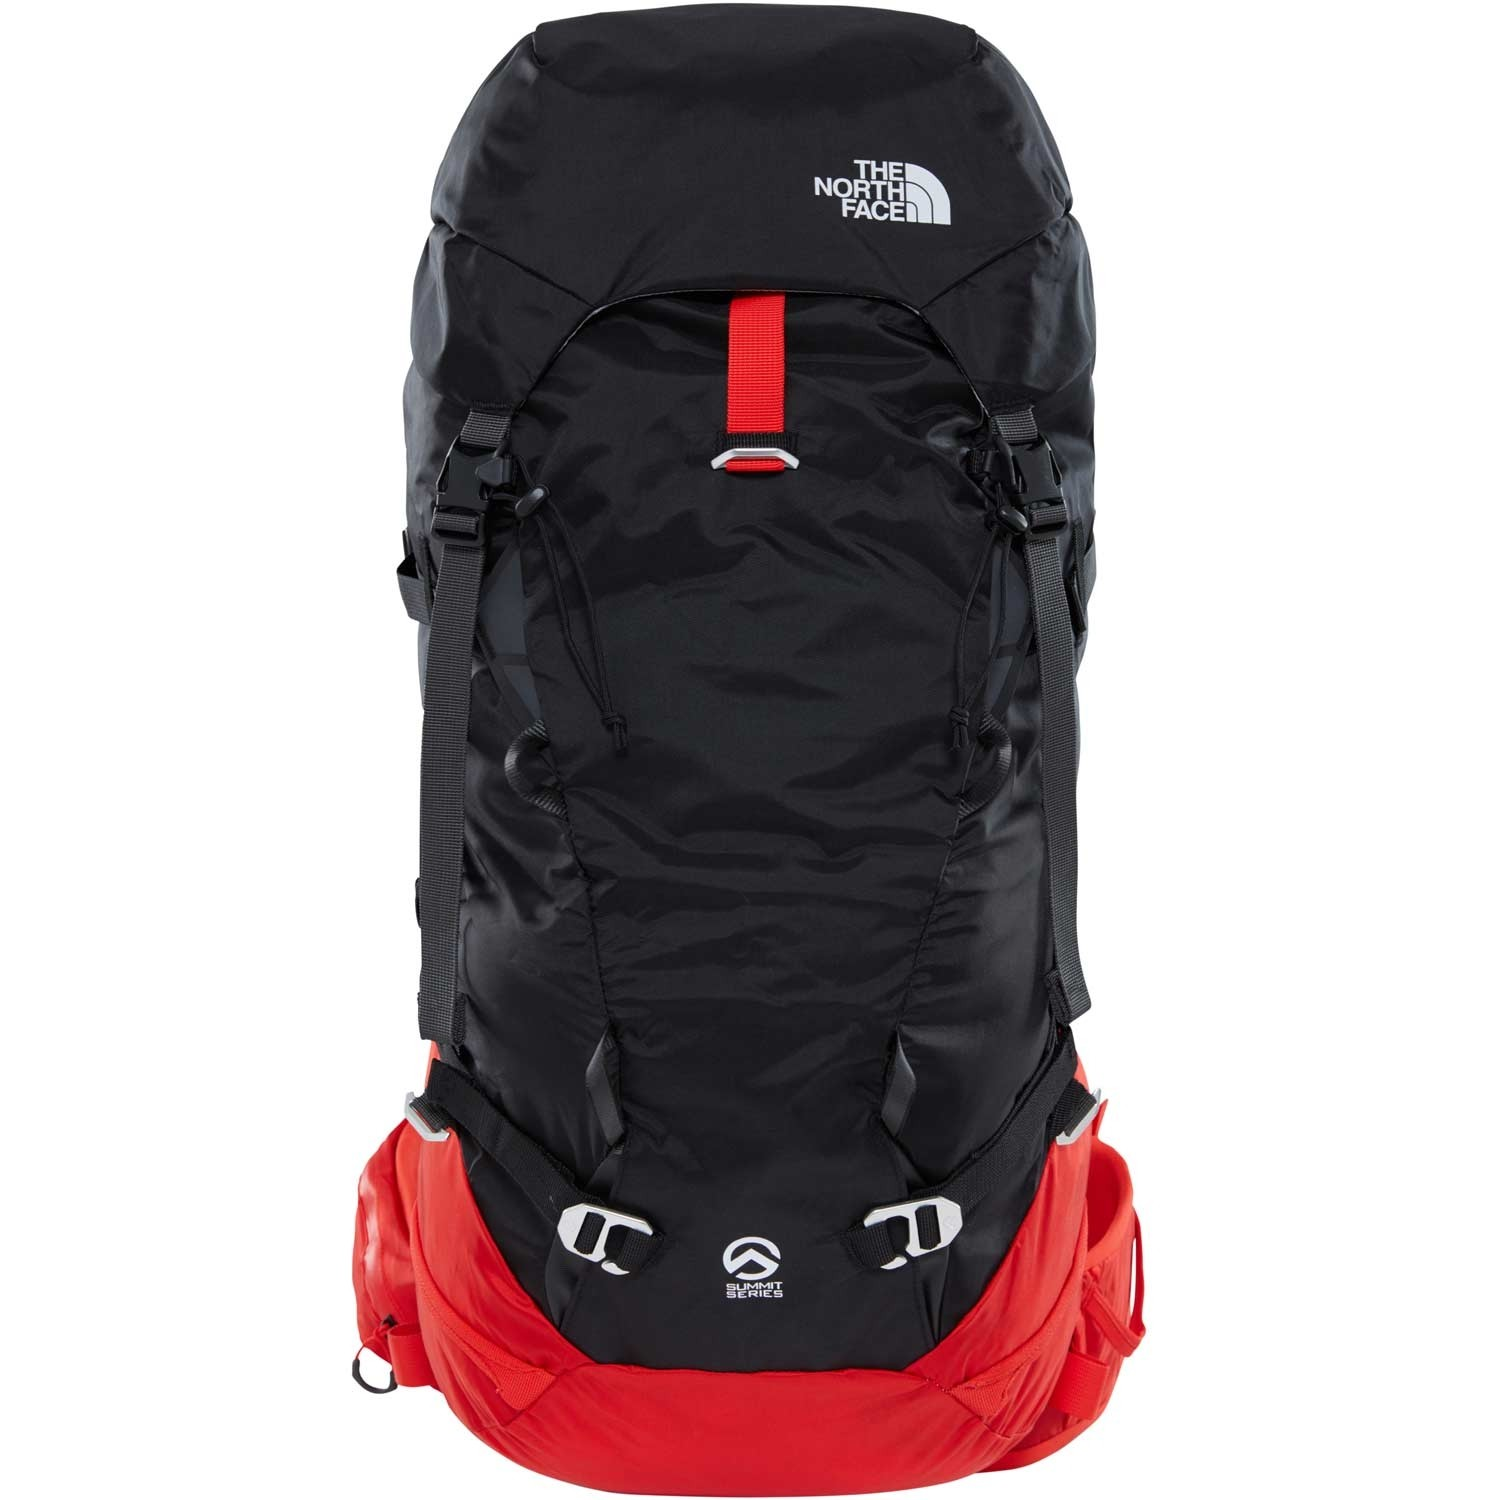 The North Face Phantom 38 Rucksack - Fiery Red/TNF Black